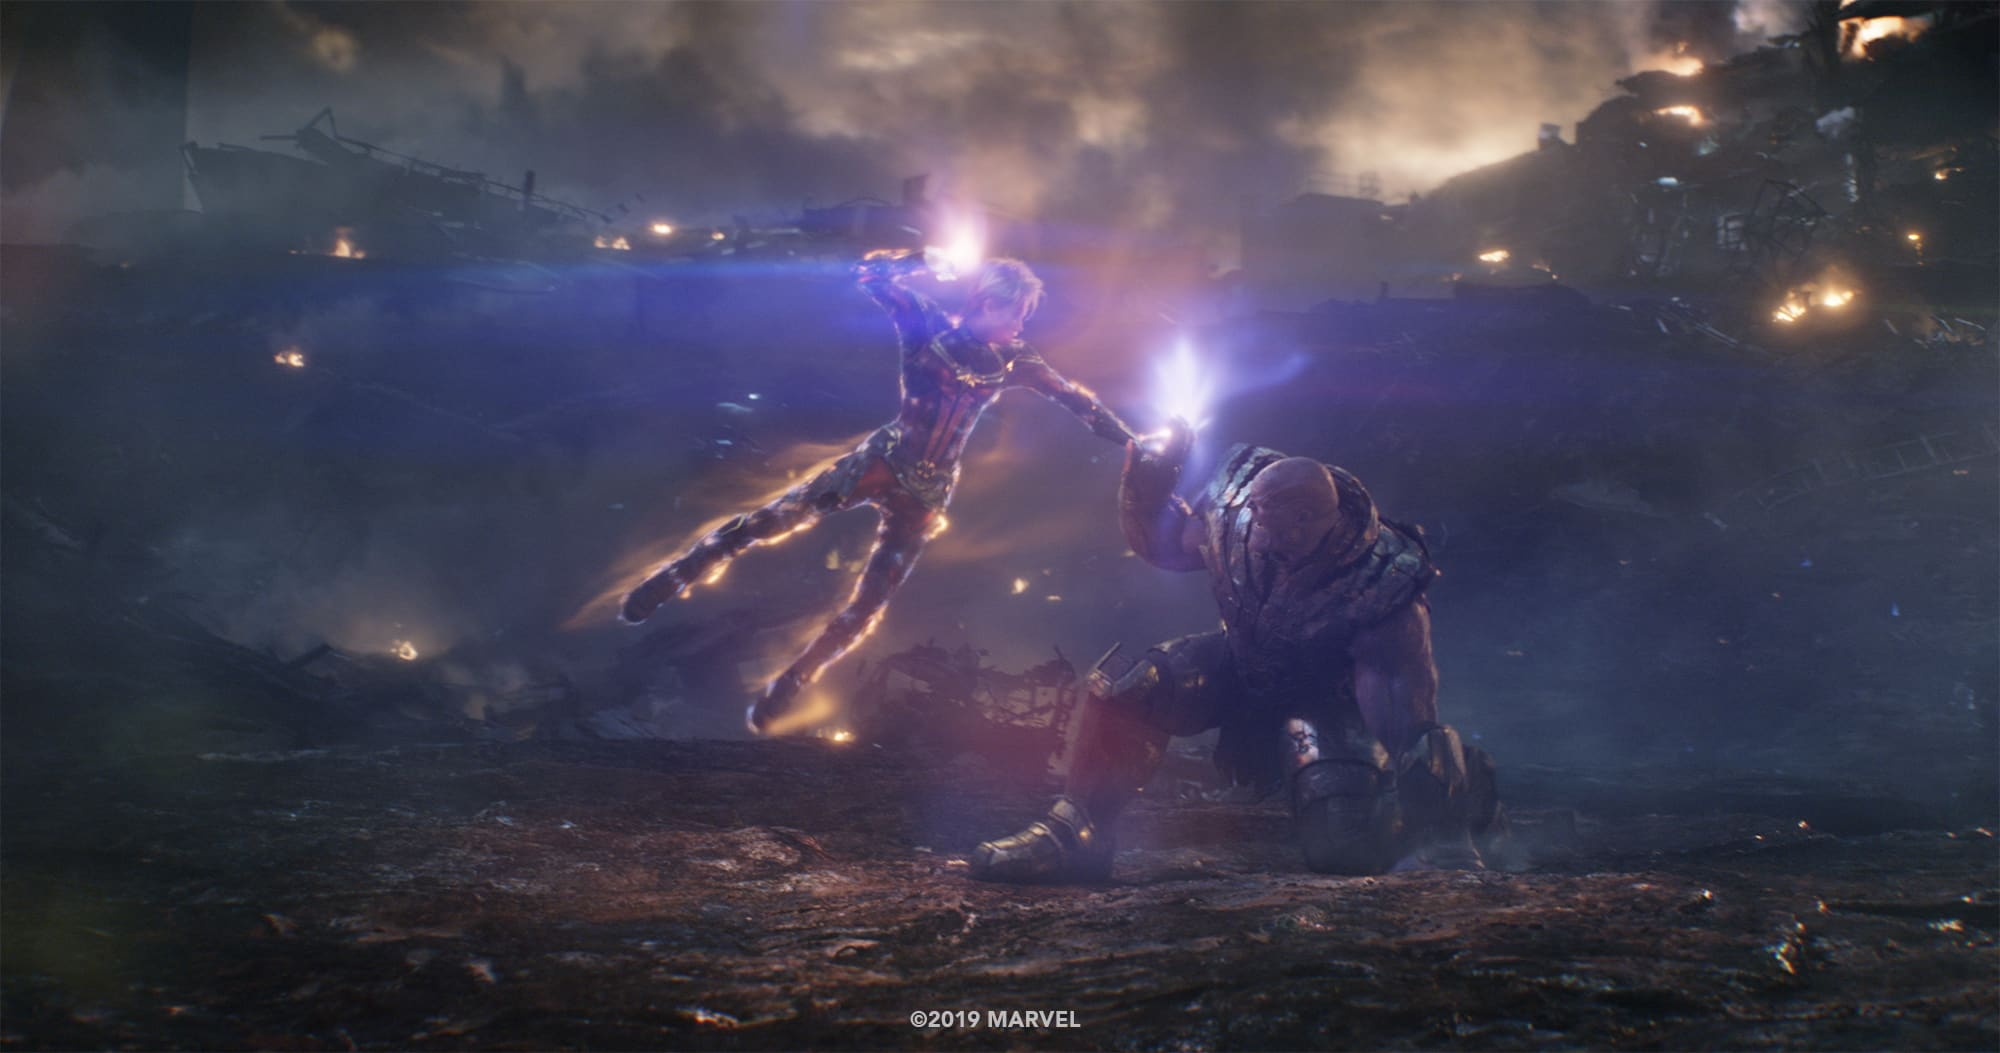 Photo du film Avengers: Endgame avec Captain Marvel contre Thanos (plan final)